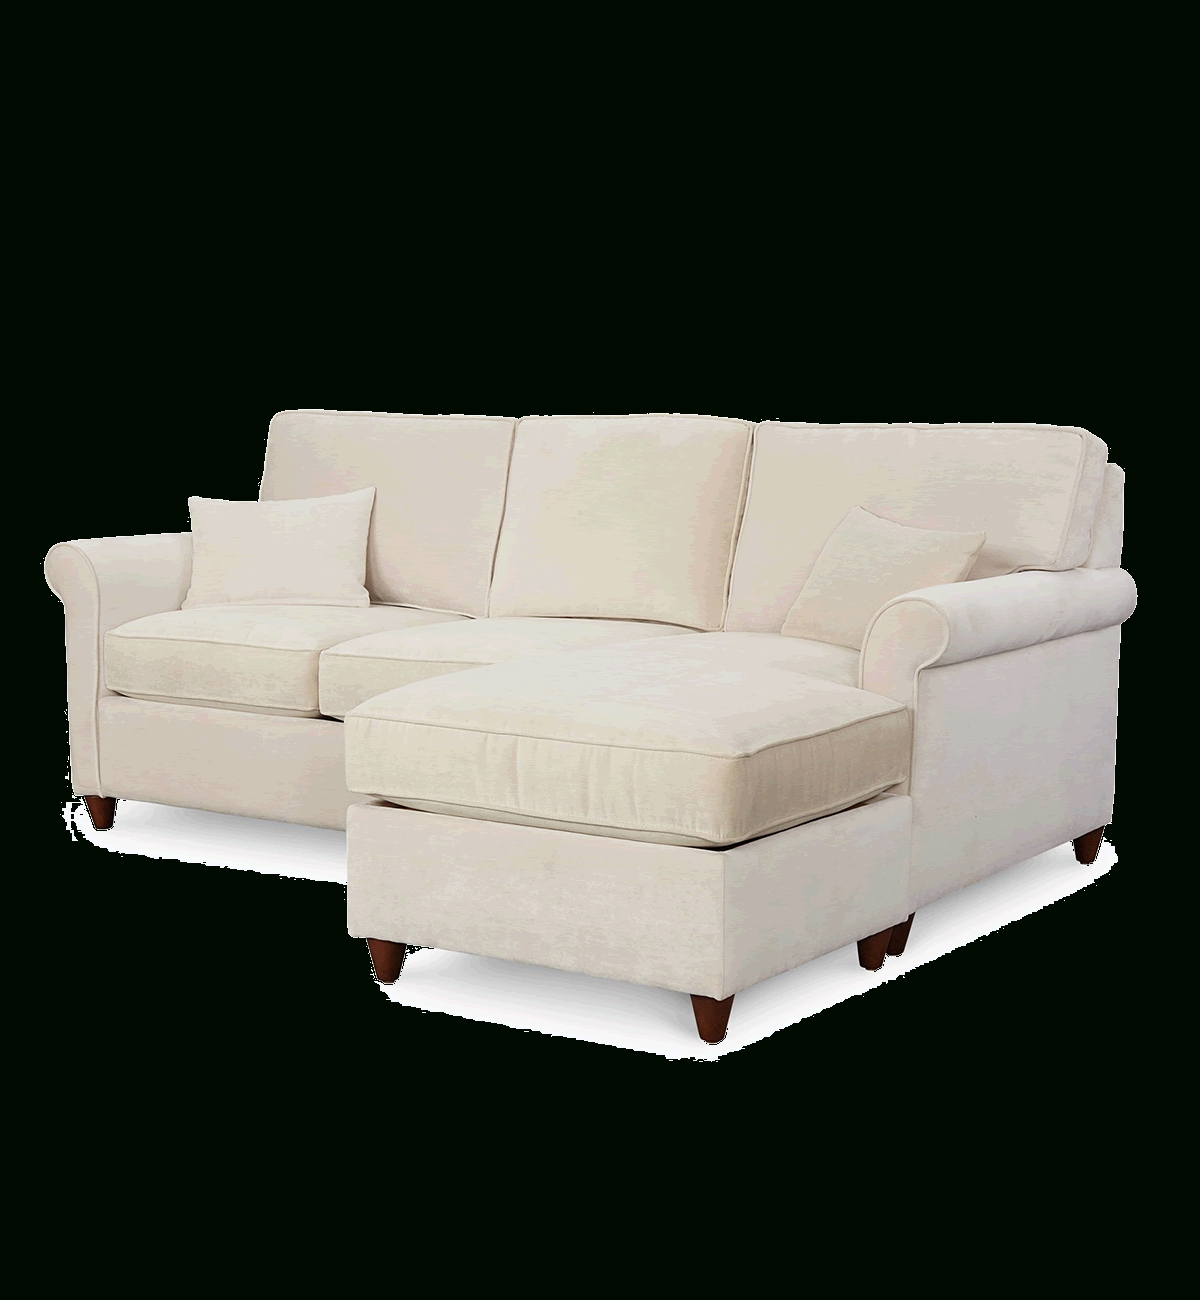 Macys Leather Sofas With Regard To Most Current Leather Couches And Sofas – Macy's (View 10 of 20)